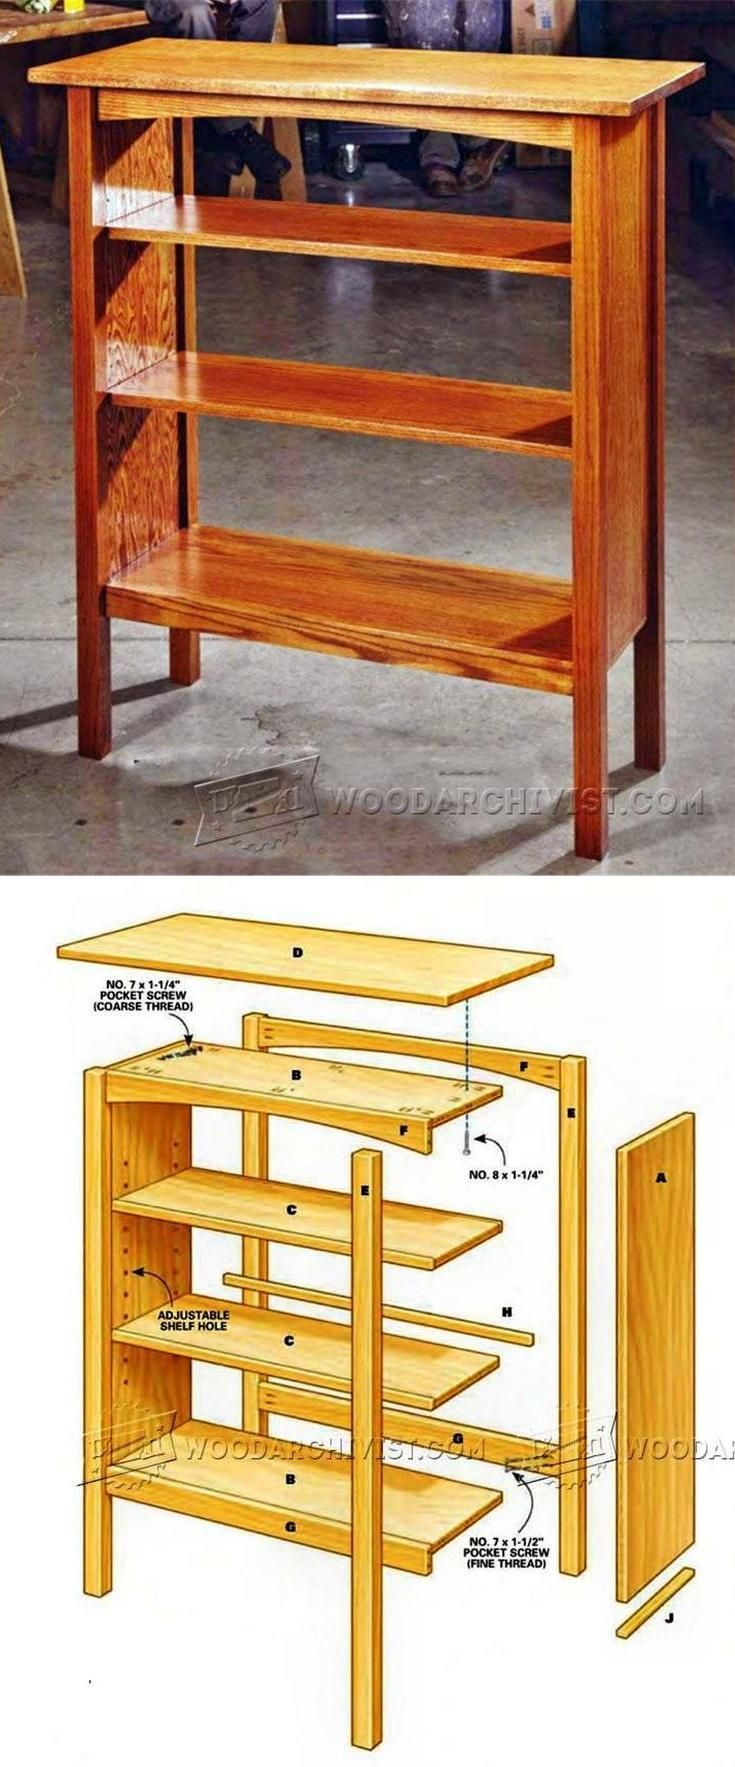 Simple Bookcase Plans Furniture Plans and Projects